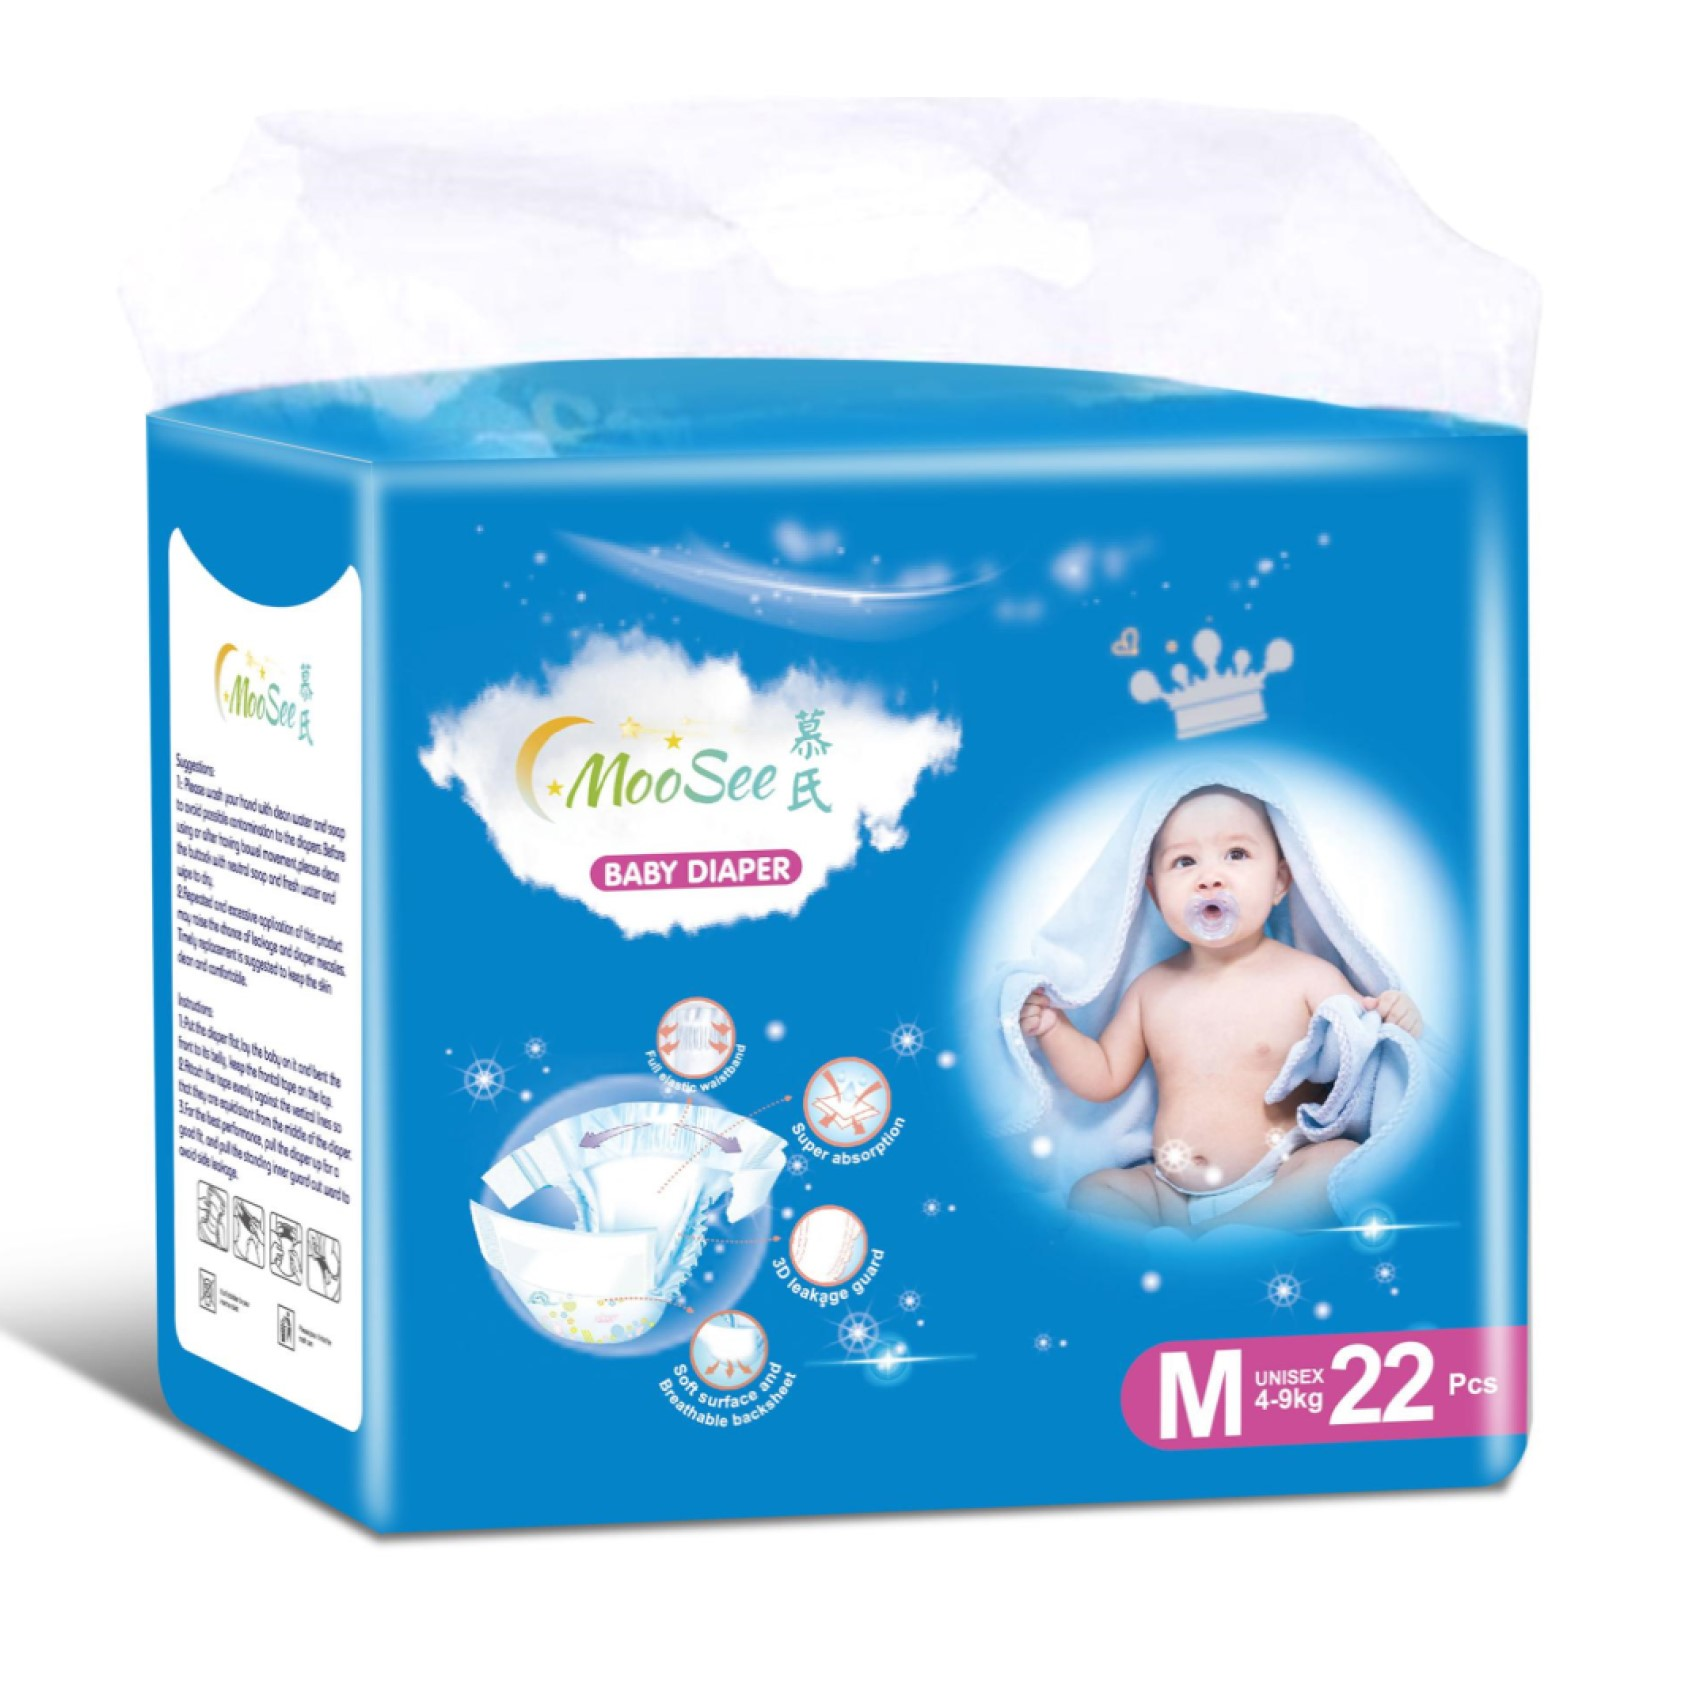 New baby diaper company for baby-1